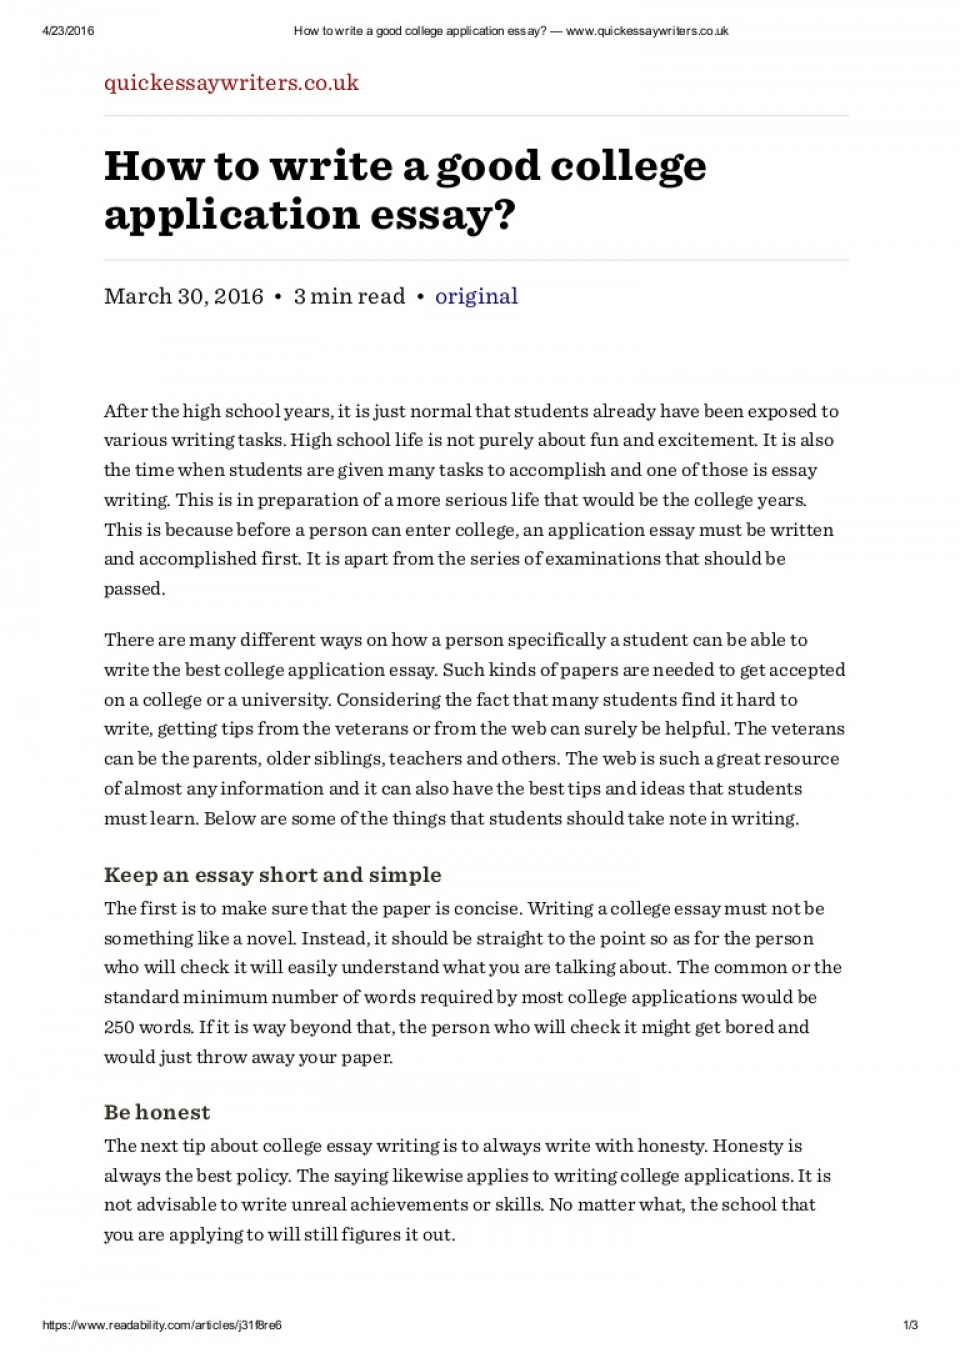 009 Howtowriteagoodcollegeapplicationessaywww Thumbnail Essay Example Writing College Rare A Application About Yourself Examples Tips For Level How To Write Research Paper Outline 960